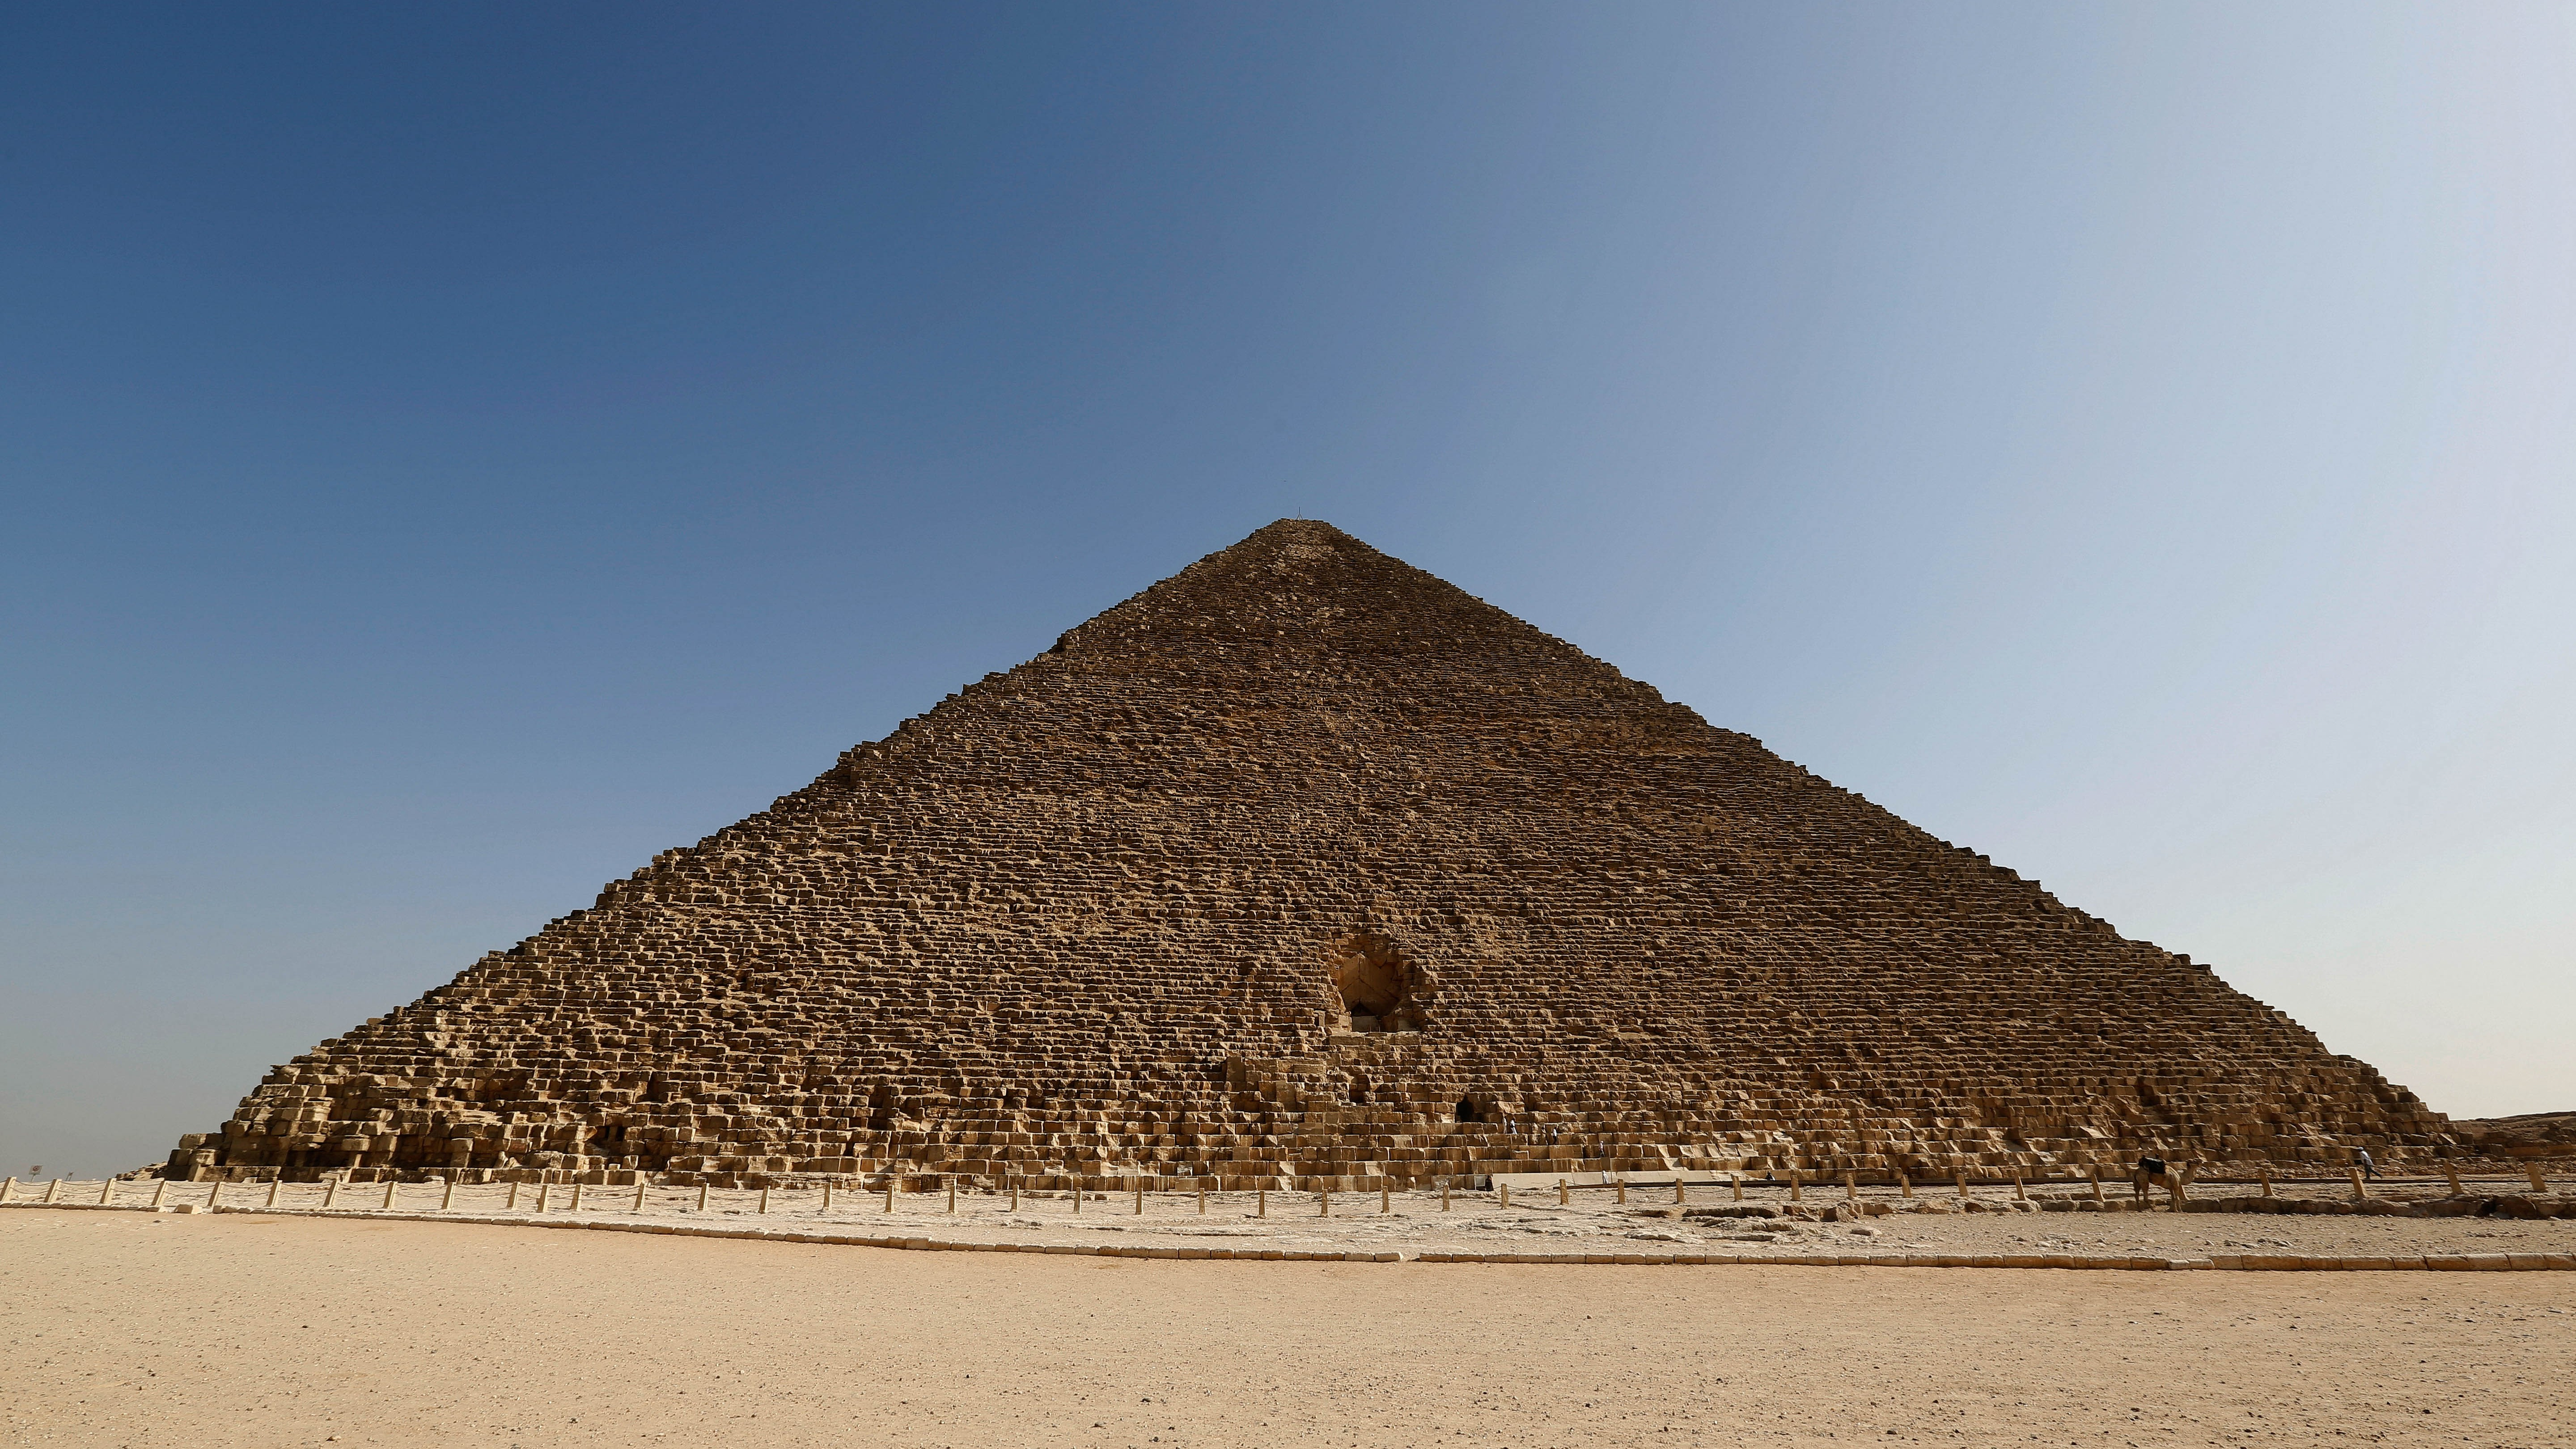 Scientists Blast Pyramids of Giza With Subatomic Particles to Reveal Its Secrets